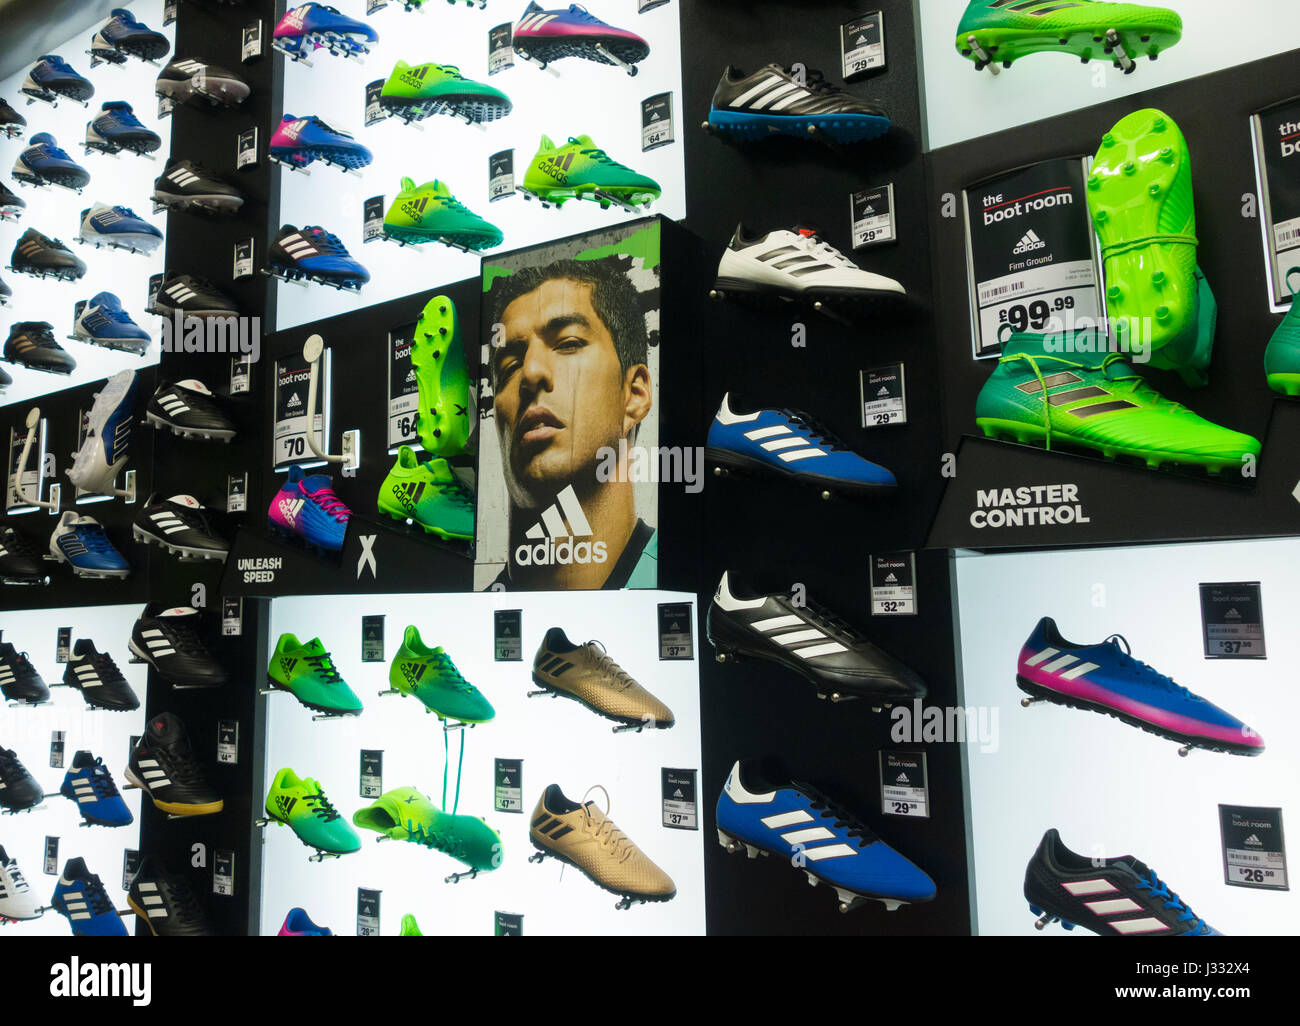 Adidas football boots dispay in Sports Direct store. UK - Stock Image